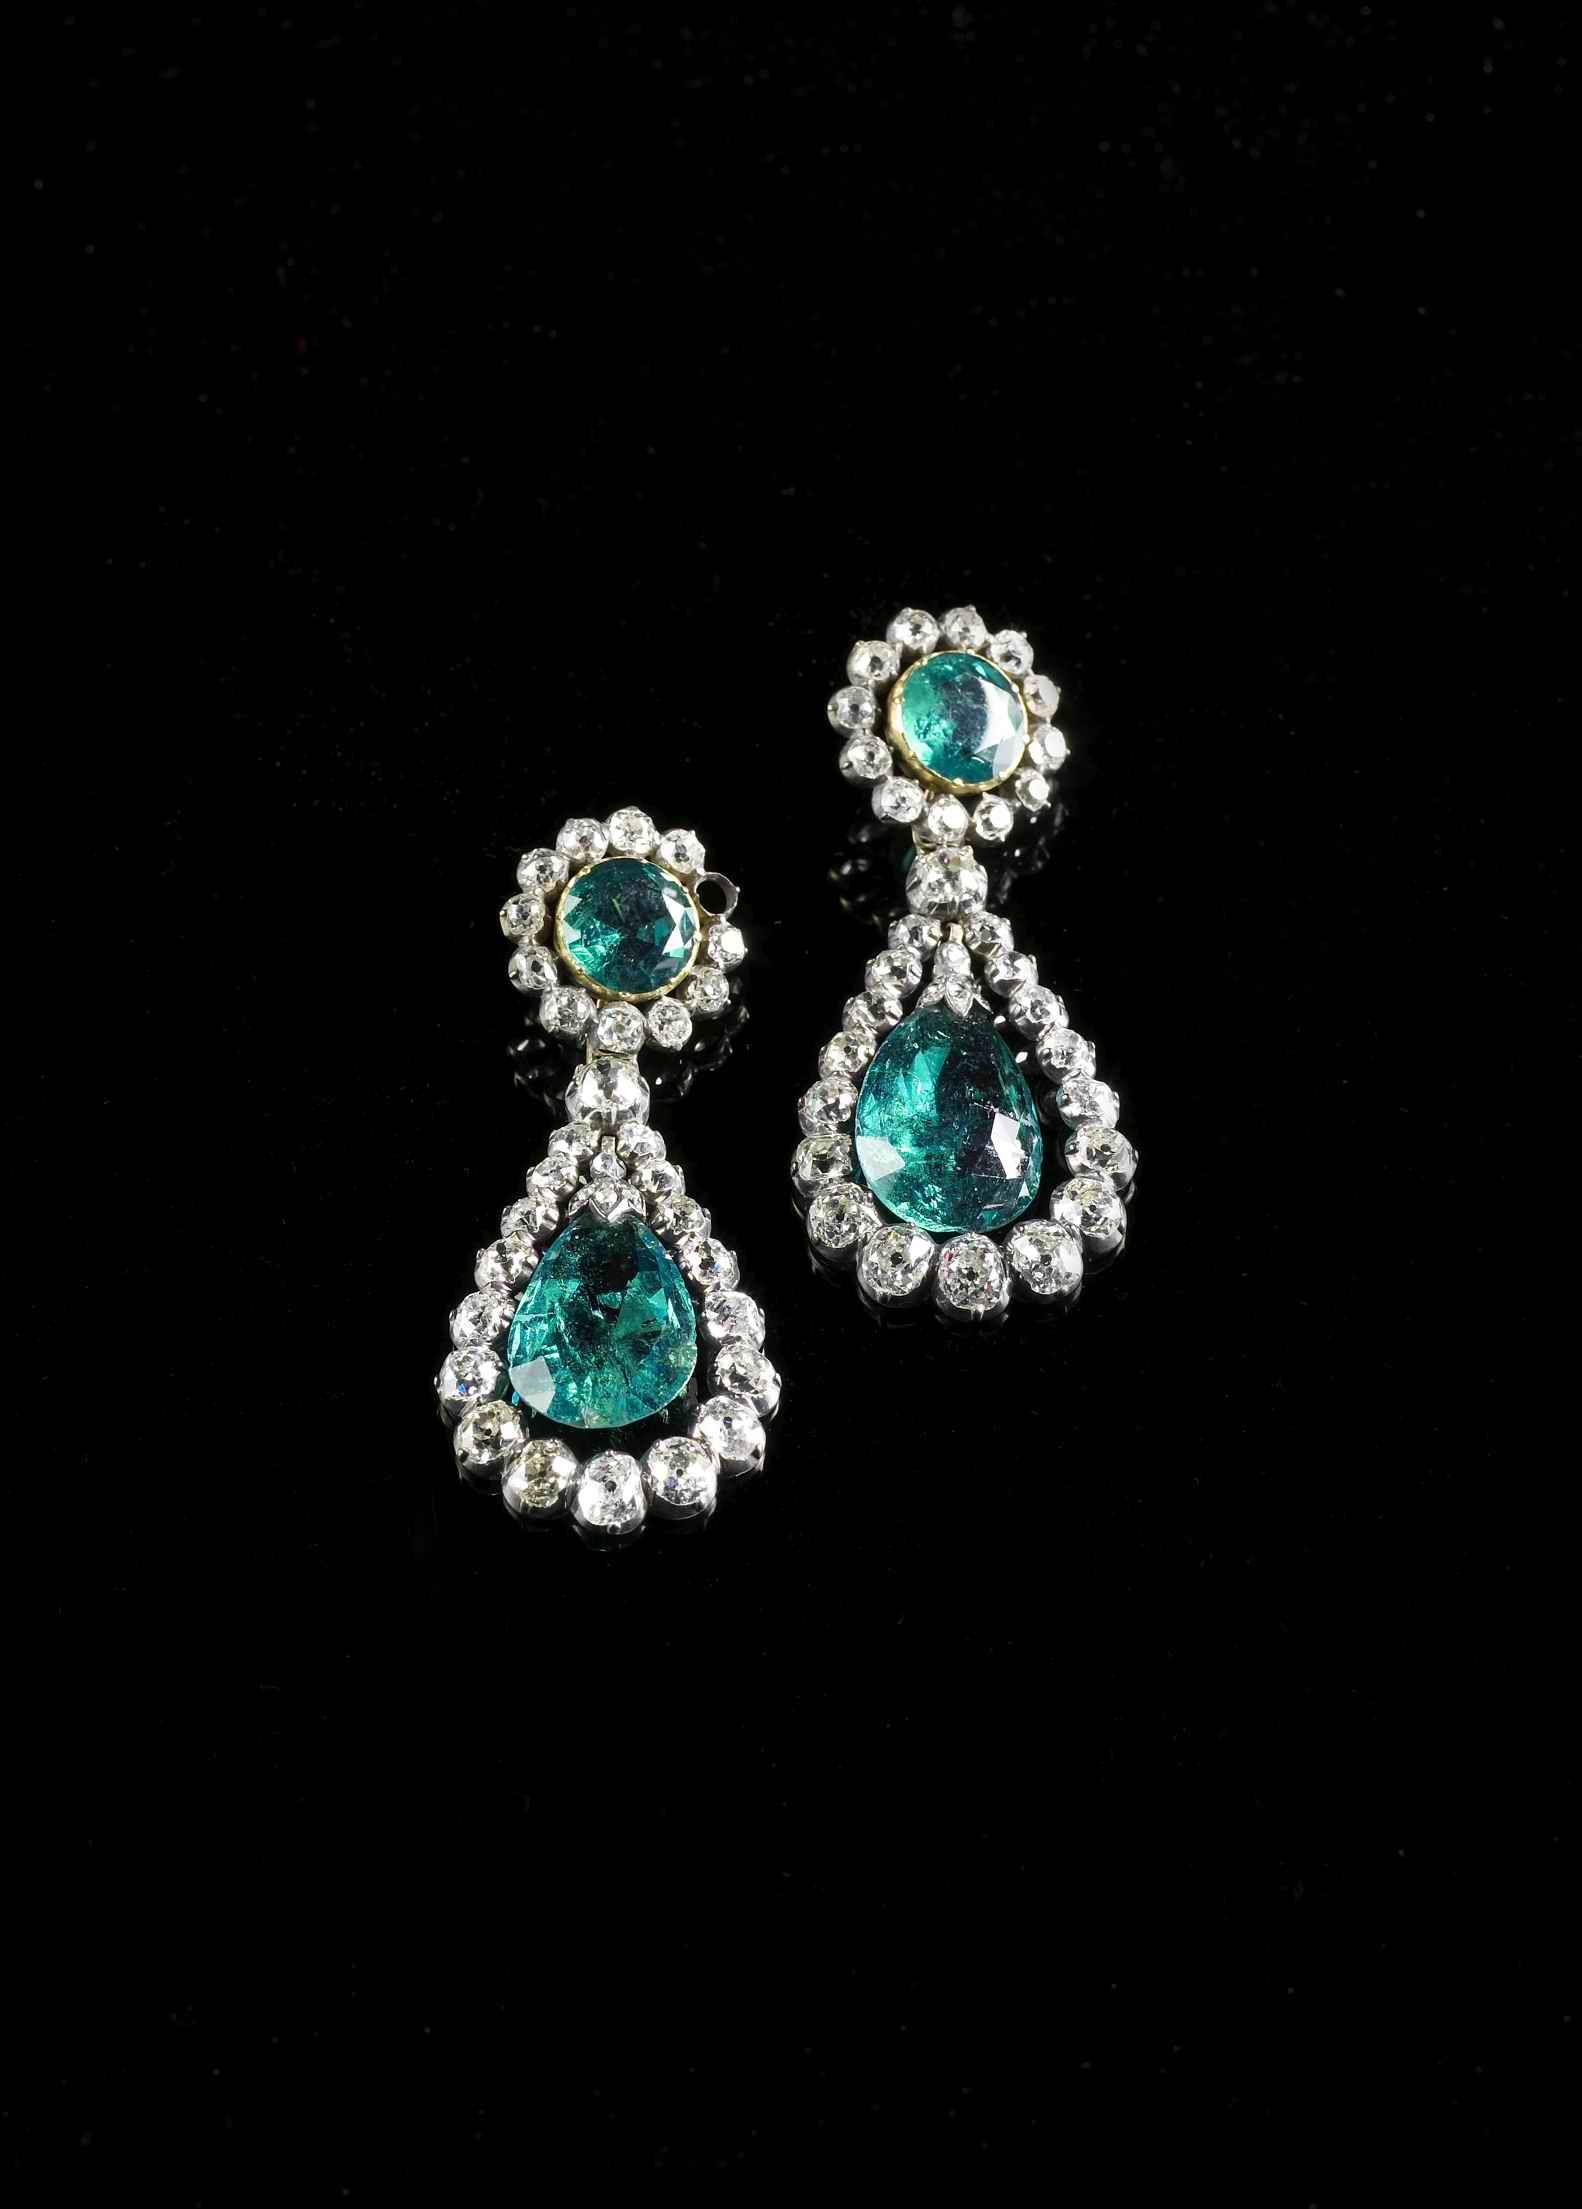 nycbullion cash emeralds jewellery visit perfect searching let still stores with center top payout the our place and trained for of in jewelry sell best nyc online to receive